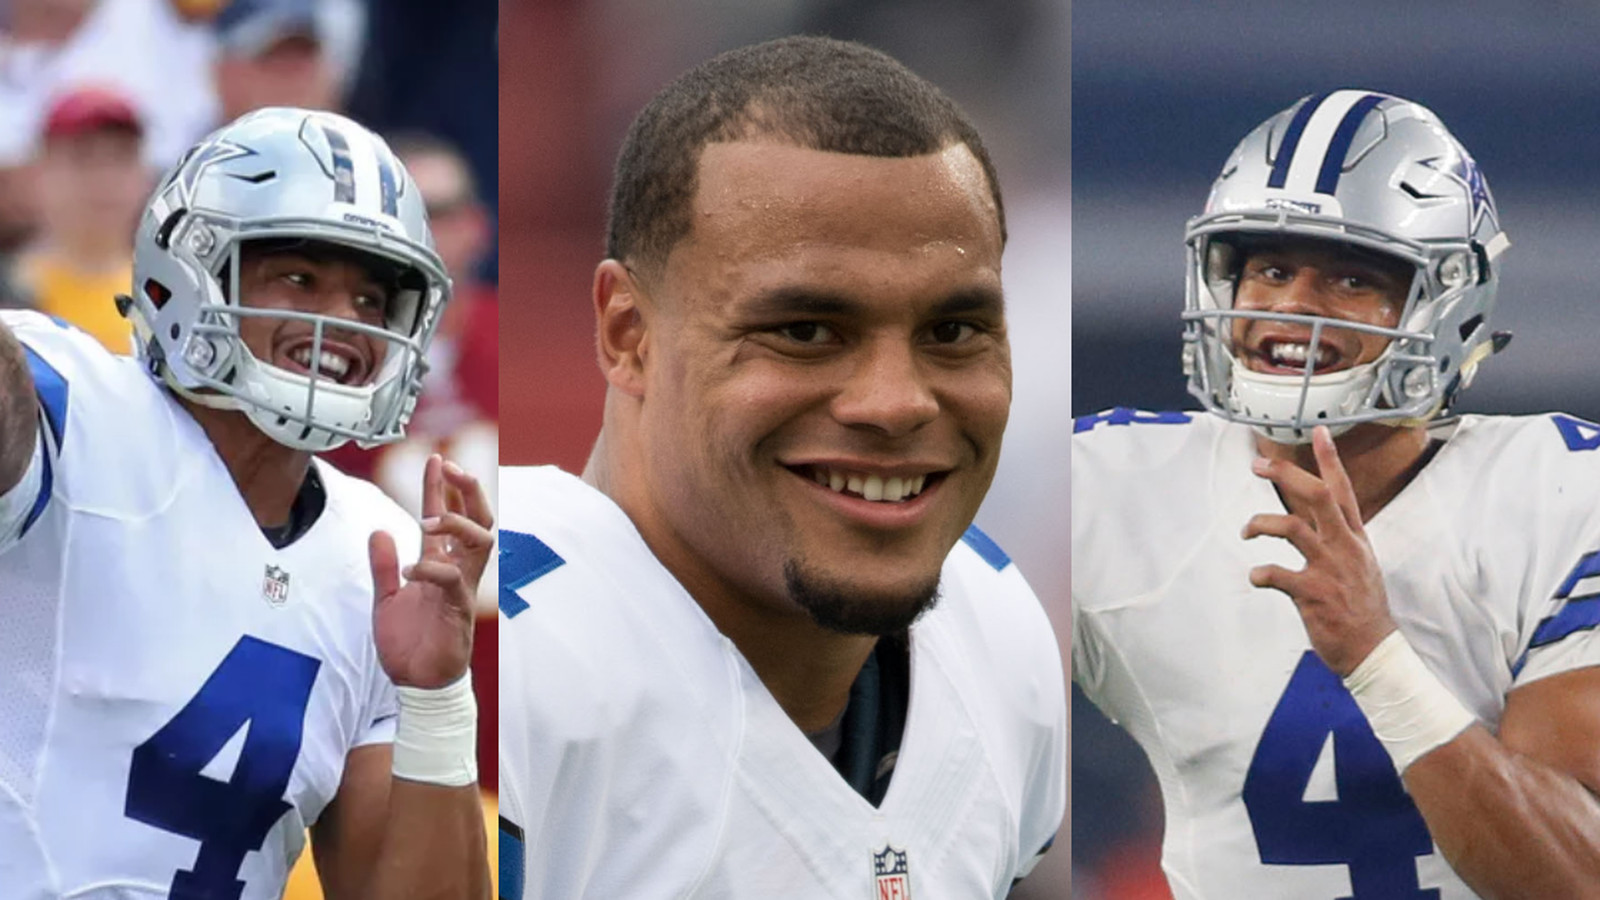 Did You Ever Notice Dak Prescott Is Always Smiling While